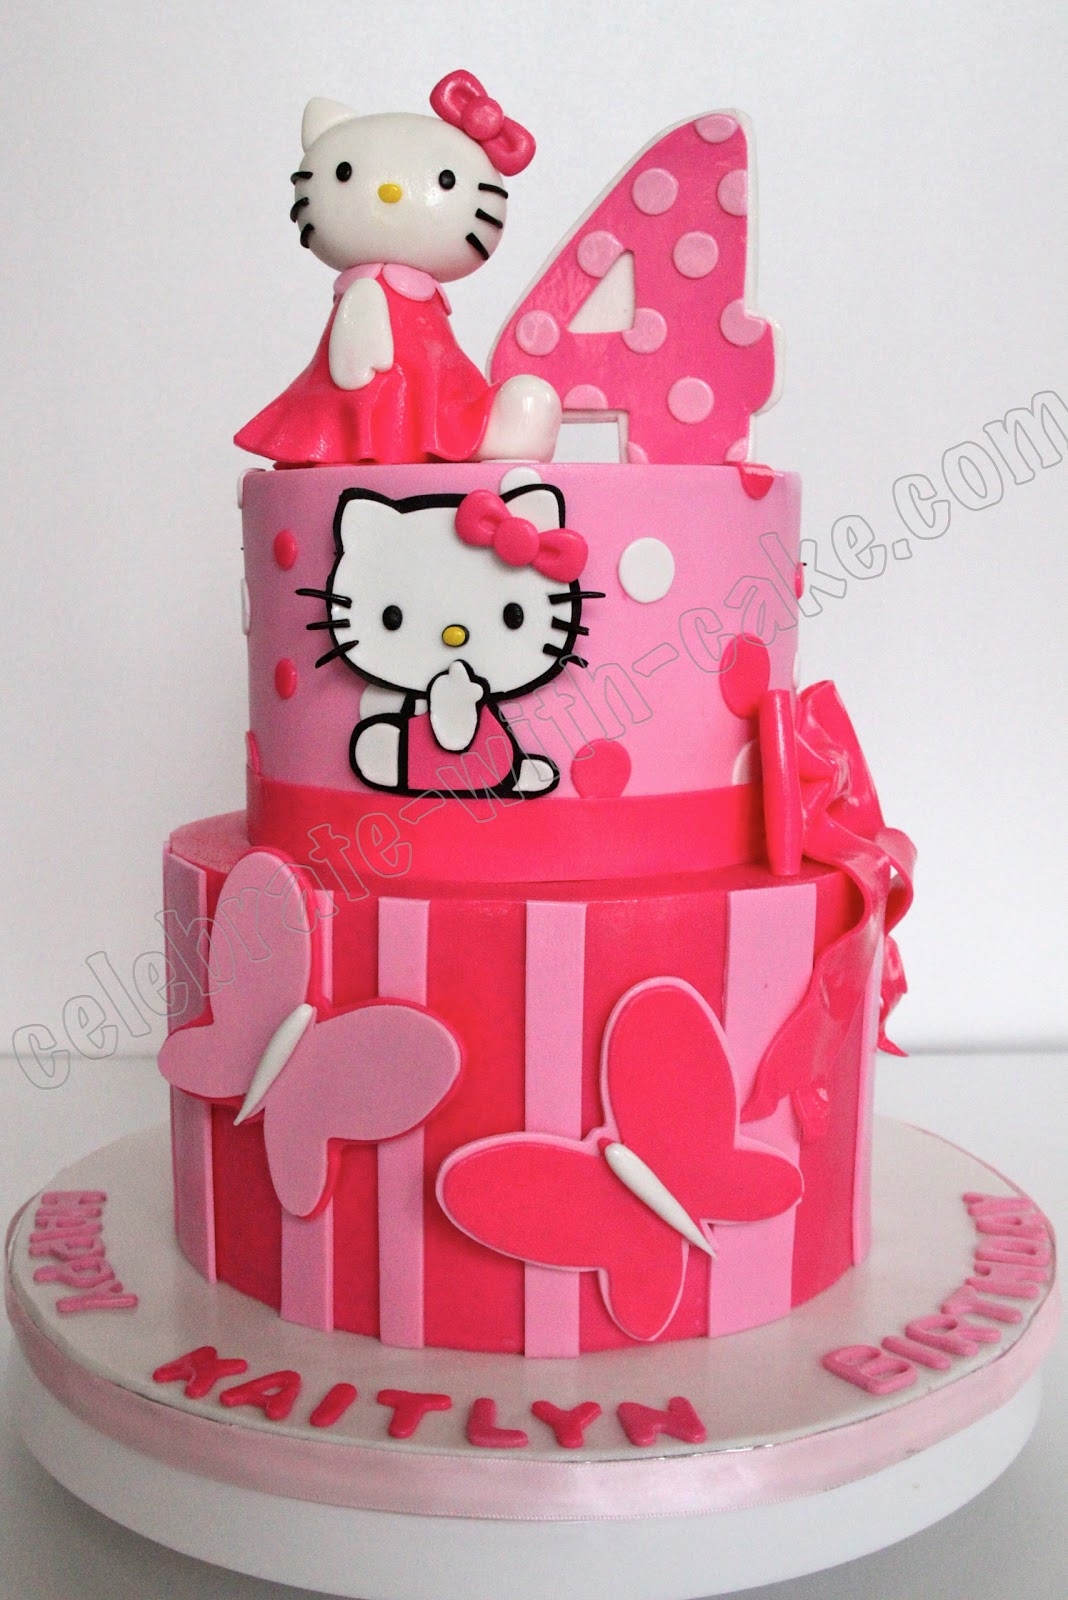 Cake Designs Of Hello Kitty : Celebrate with Cake!: Hello Kitty Cake